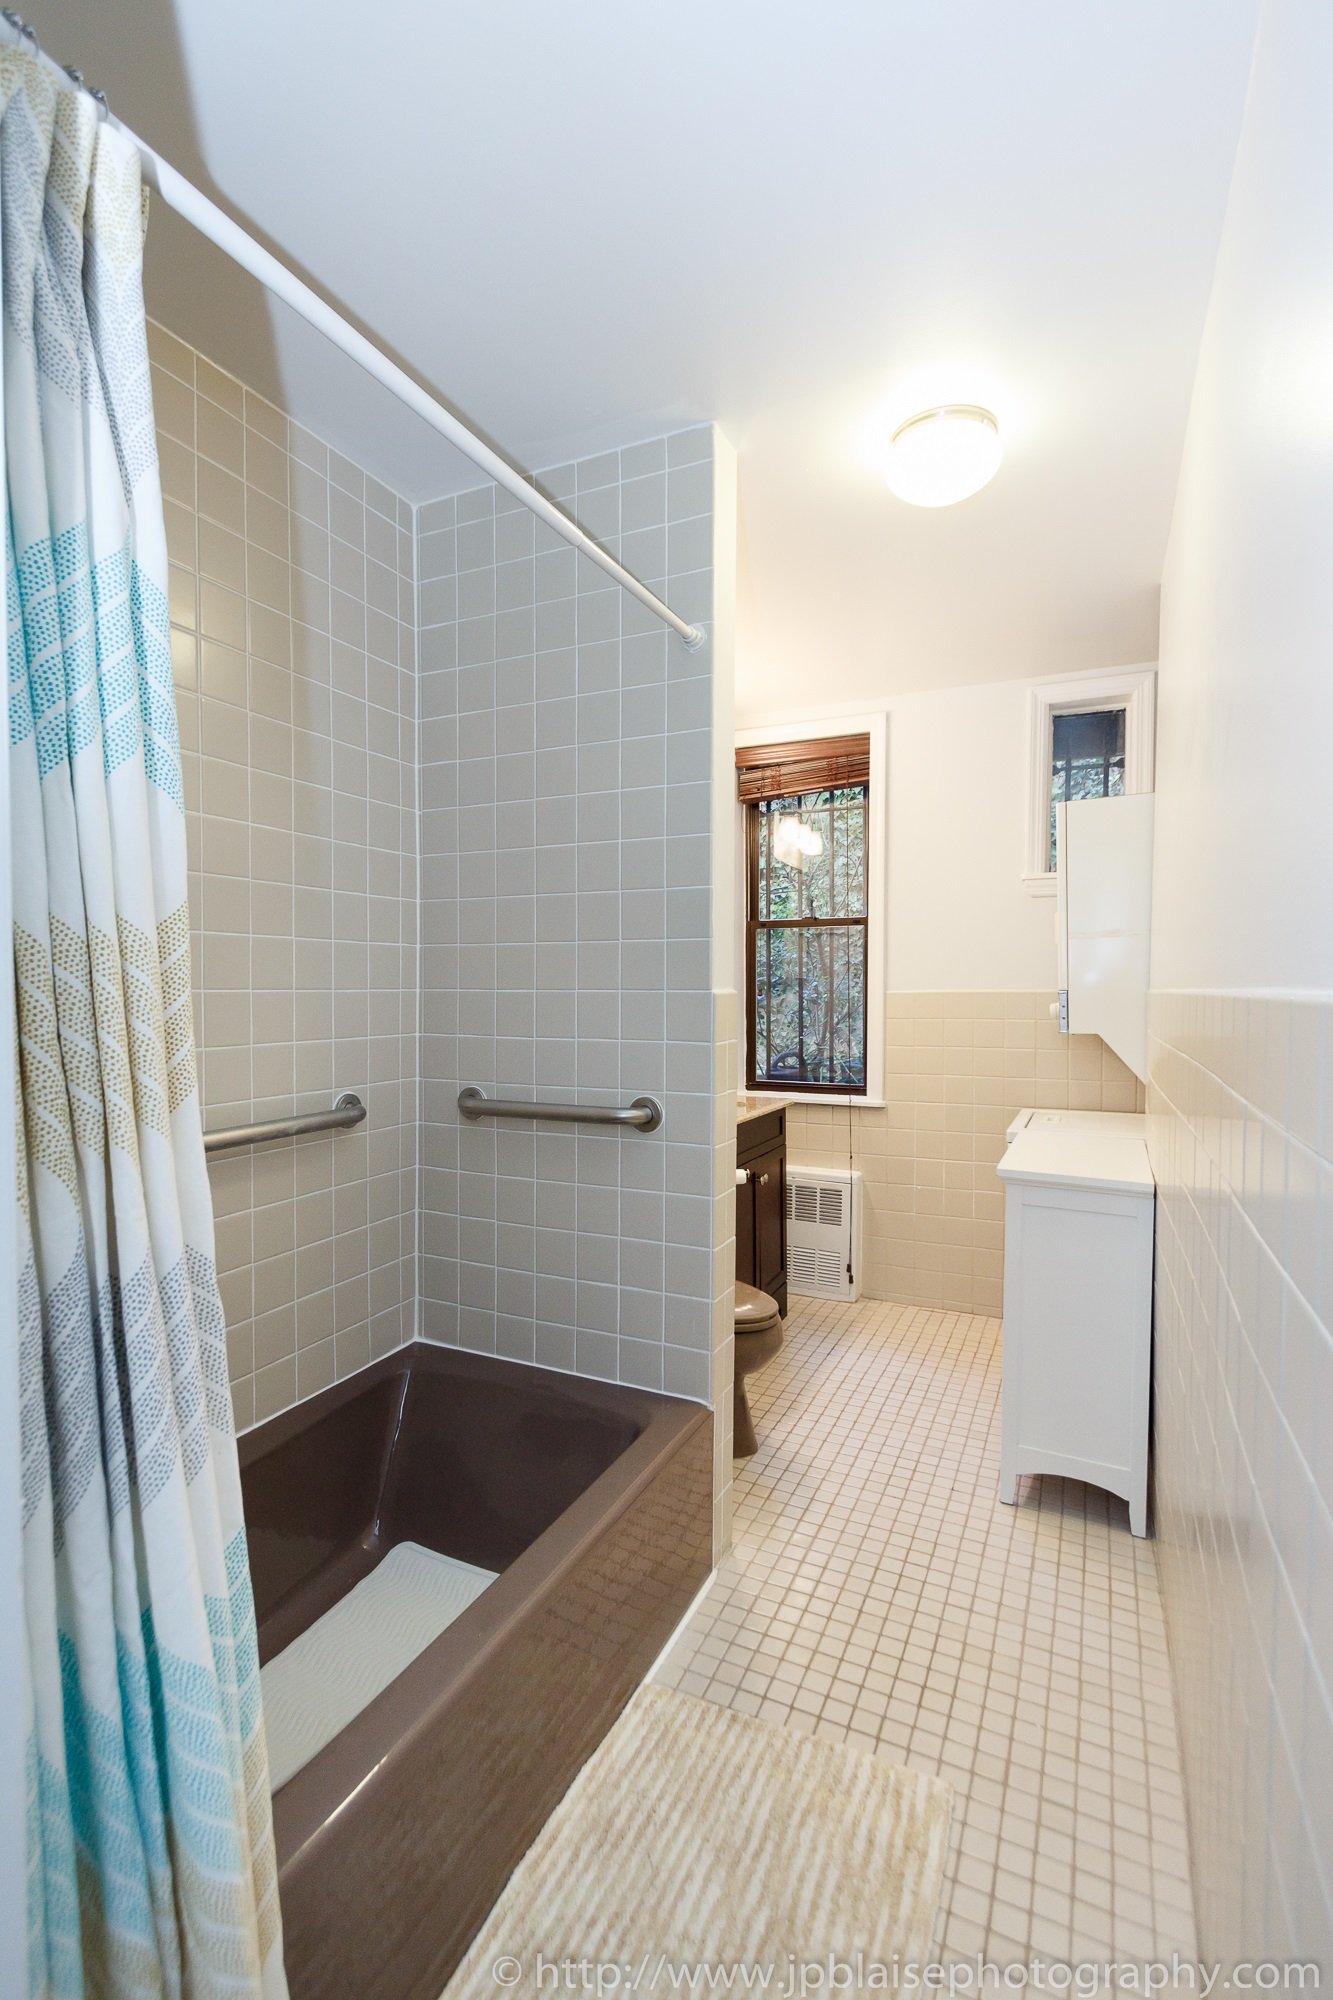 apartment photographer park slope brooklyn one bedroom bathroom. Recent Brooklyn apartment photographer session  One bedroom unit